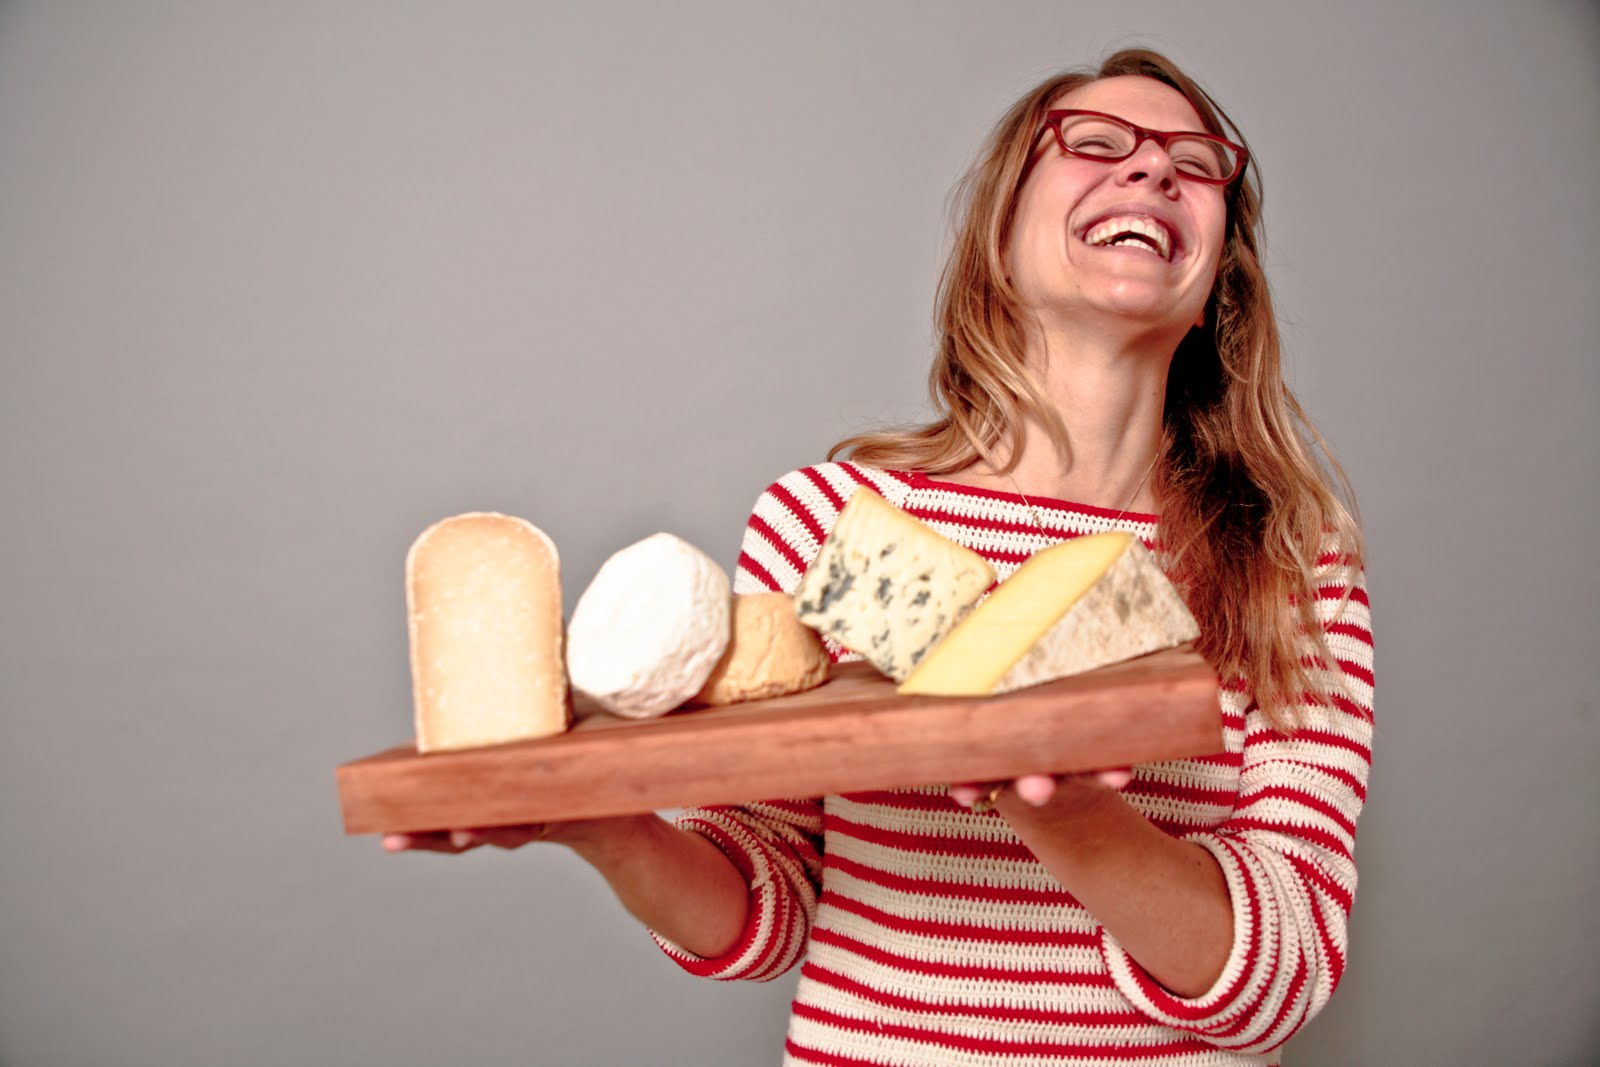 Q&A with Sarah Dvorak of Mission Cheese